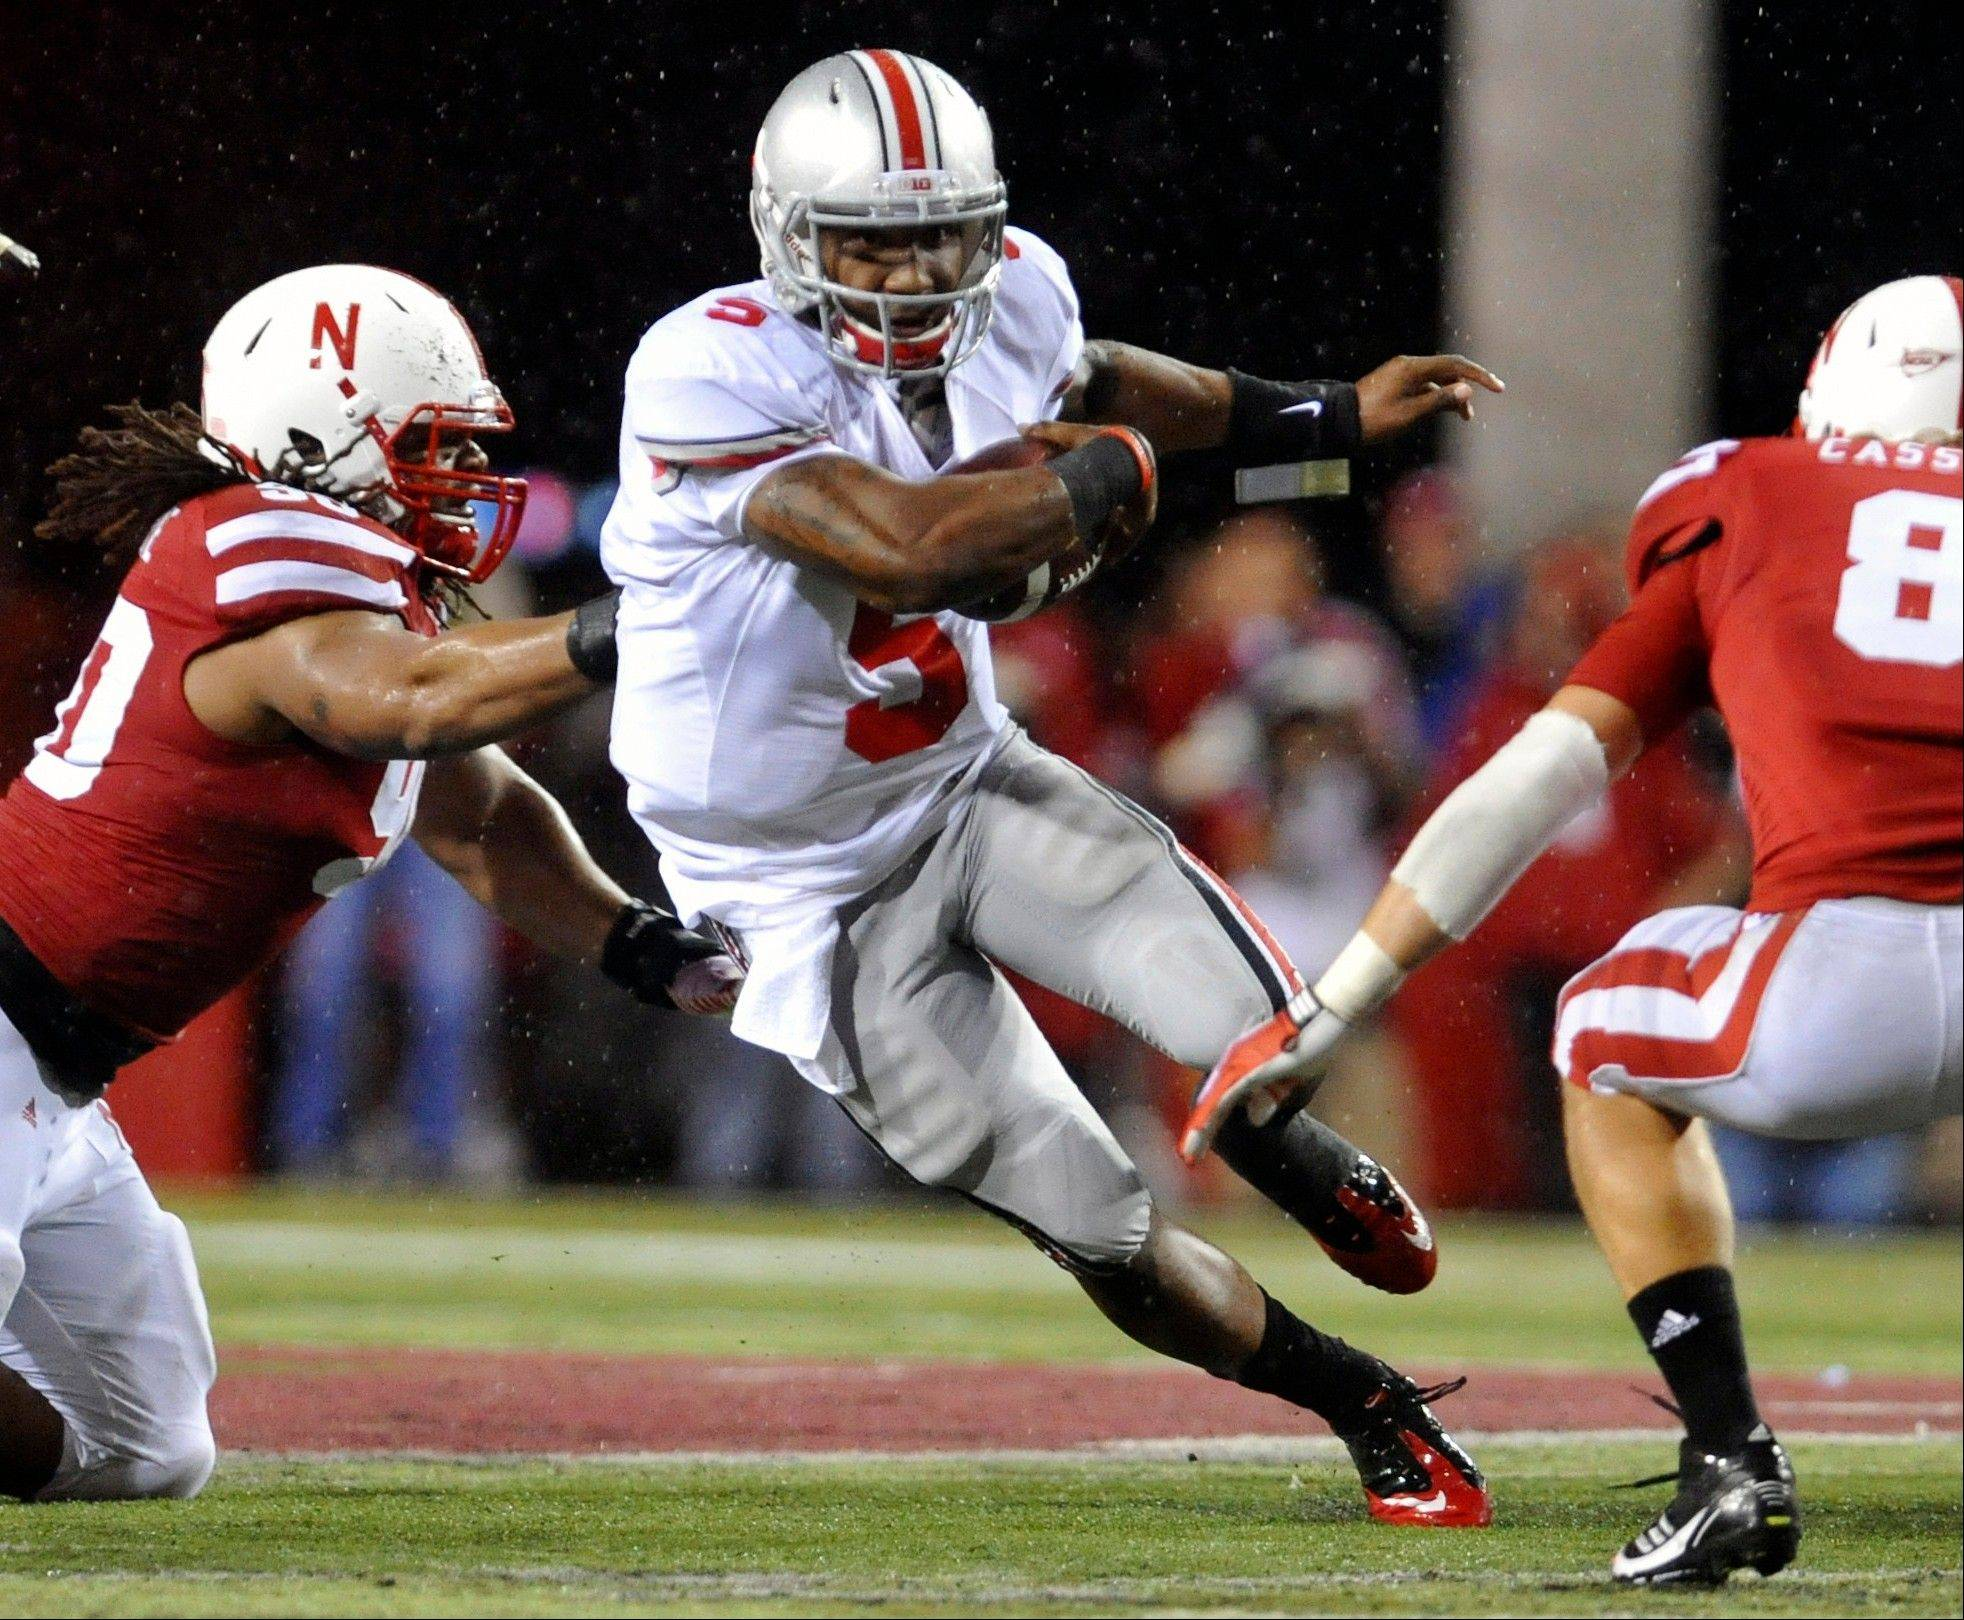 Ohio State quarterback Braxton Miller runs past Nebraska's Terrence Moore, left, and Austin Cassidy when the two teams met in 2011.